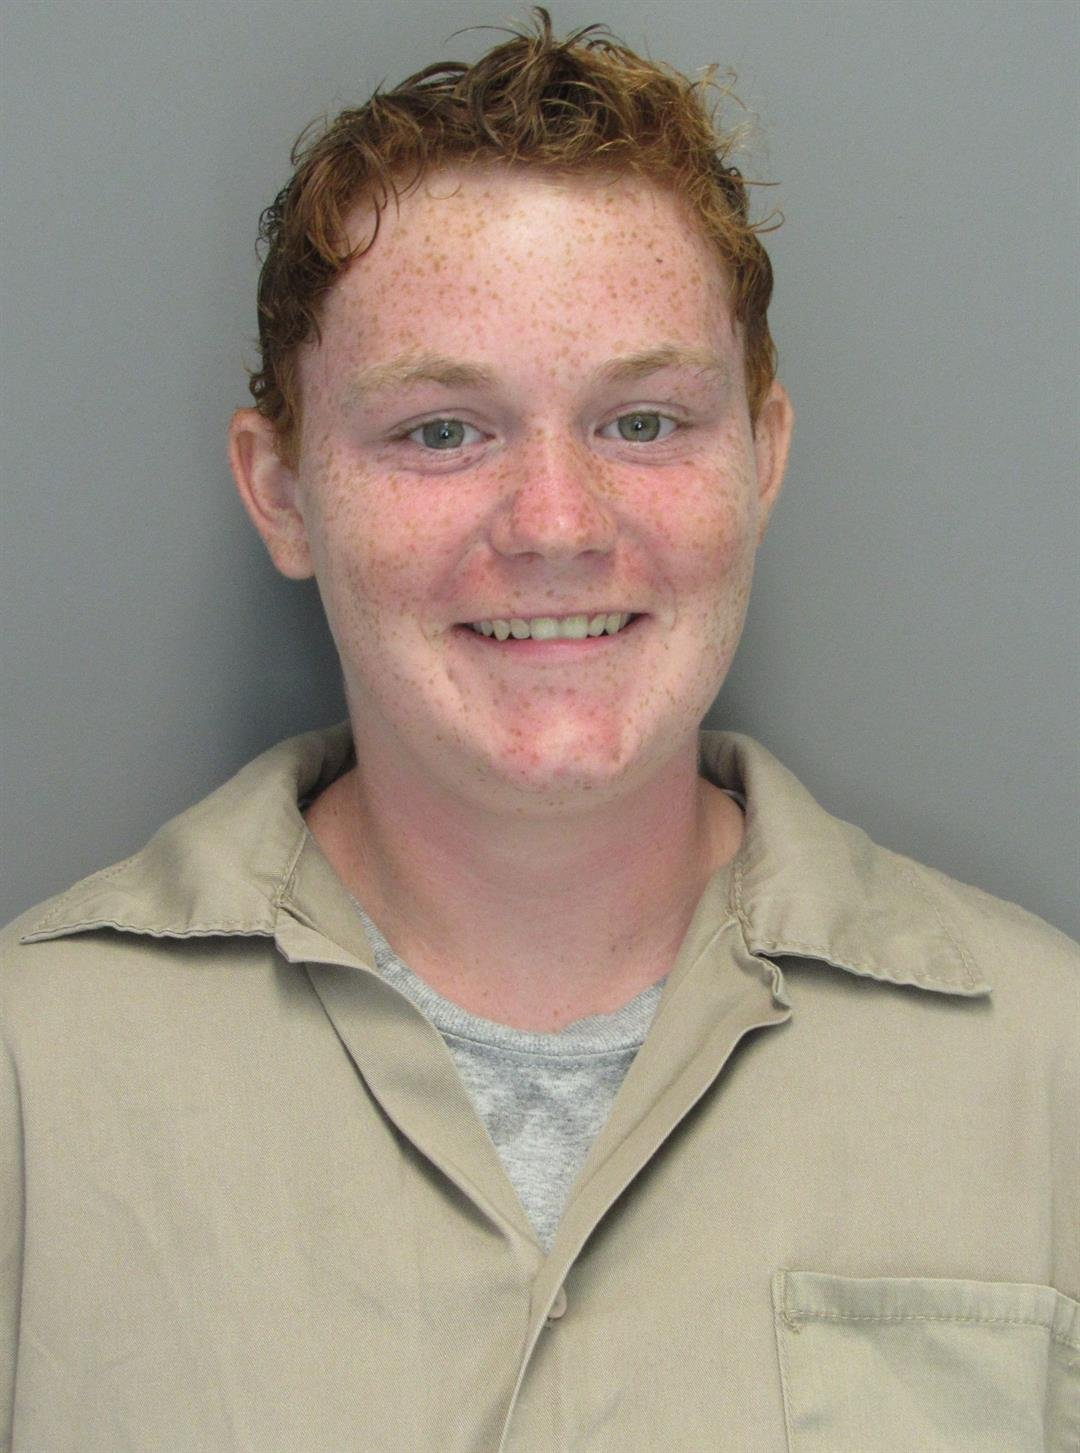 CCC-L missing female inmate after leaving job in downtown Lincoln